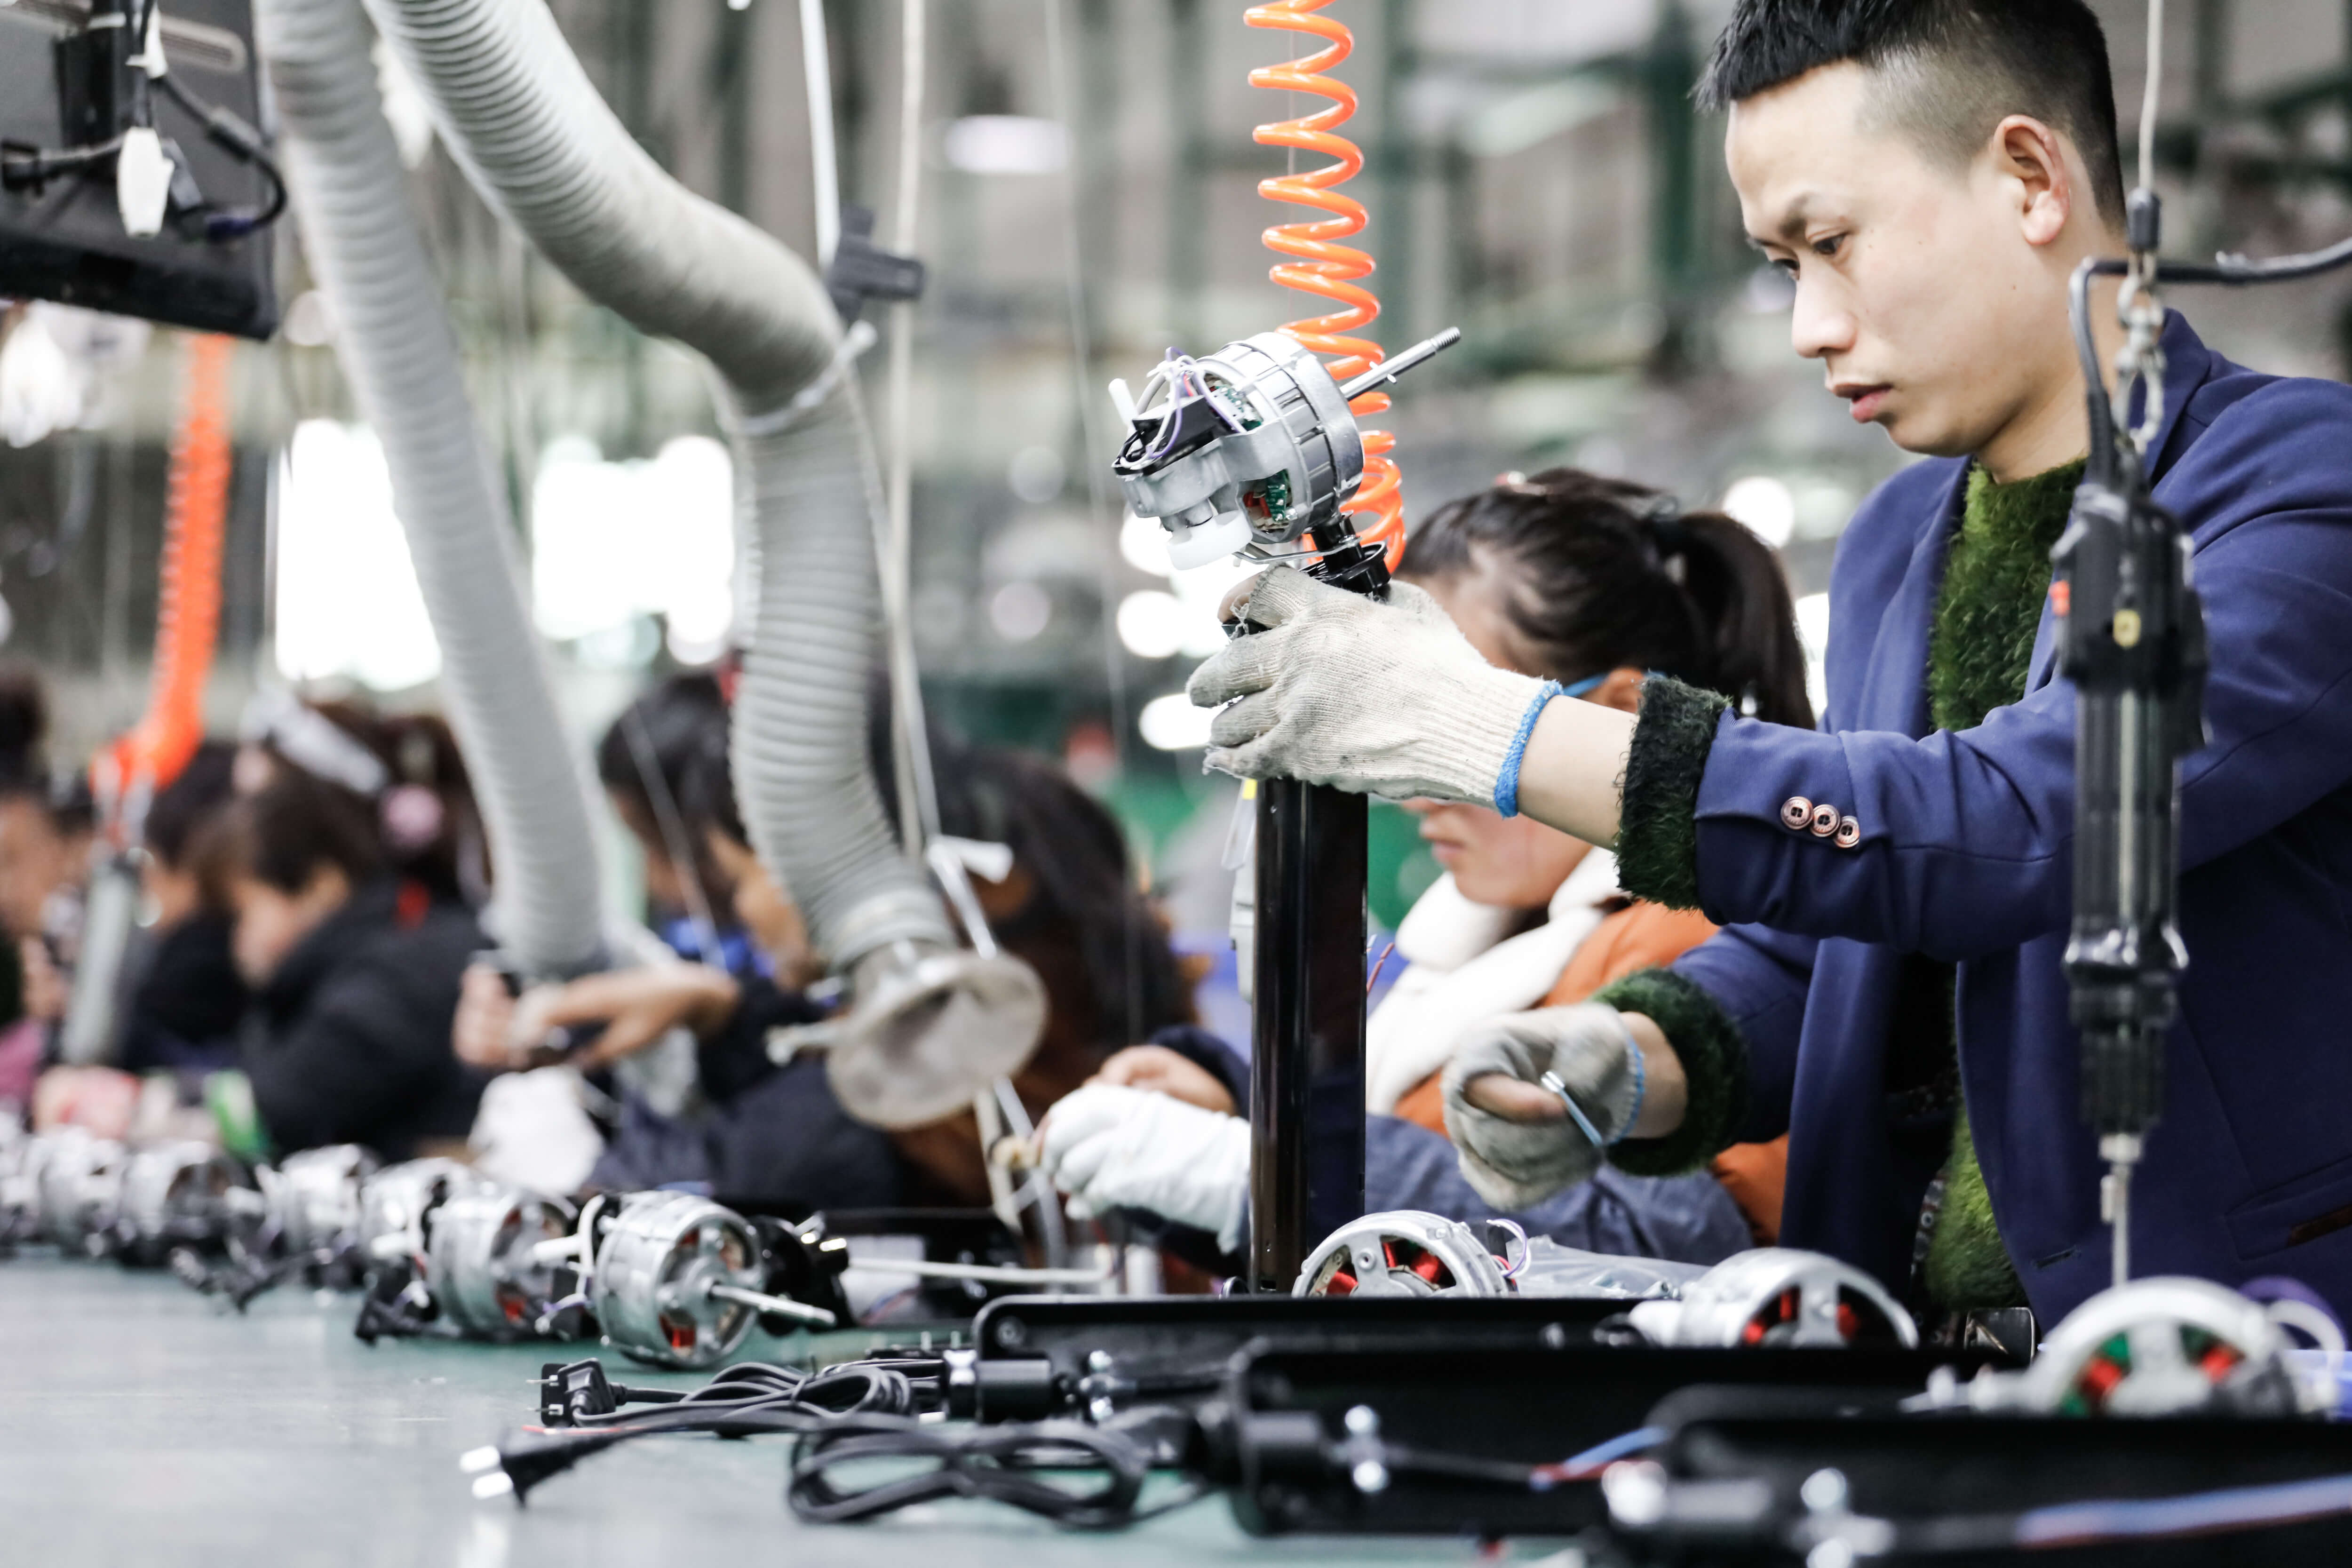 AI is expected to eliminate certain repetitive task in the near future. Source: Shutterstock